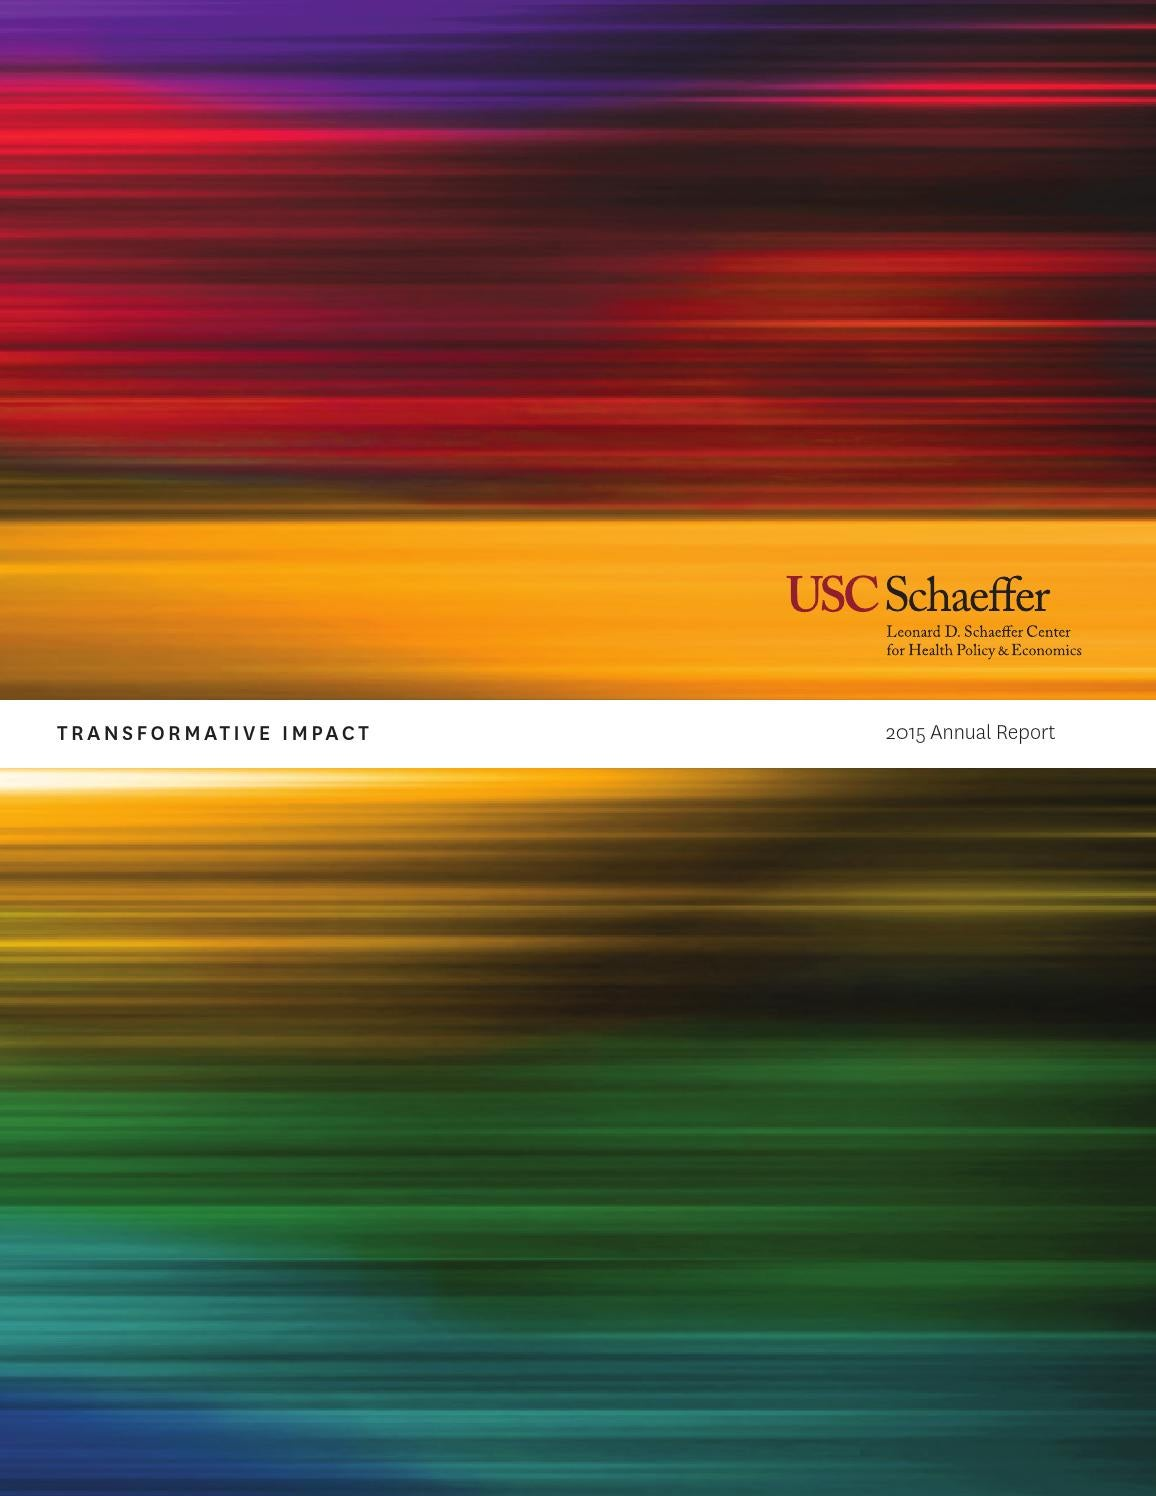 2015 Schaeffer Center Annual Report By Usc Issuu Chairman Director Chair Dc 355